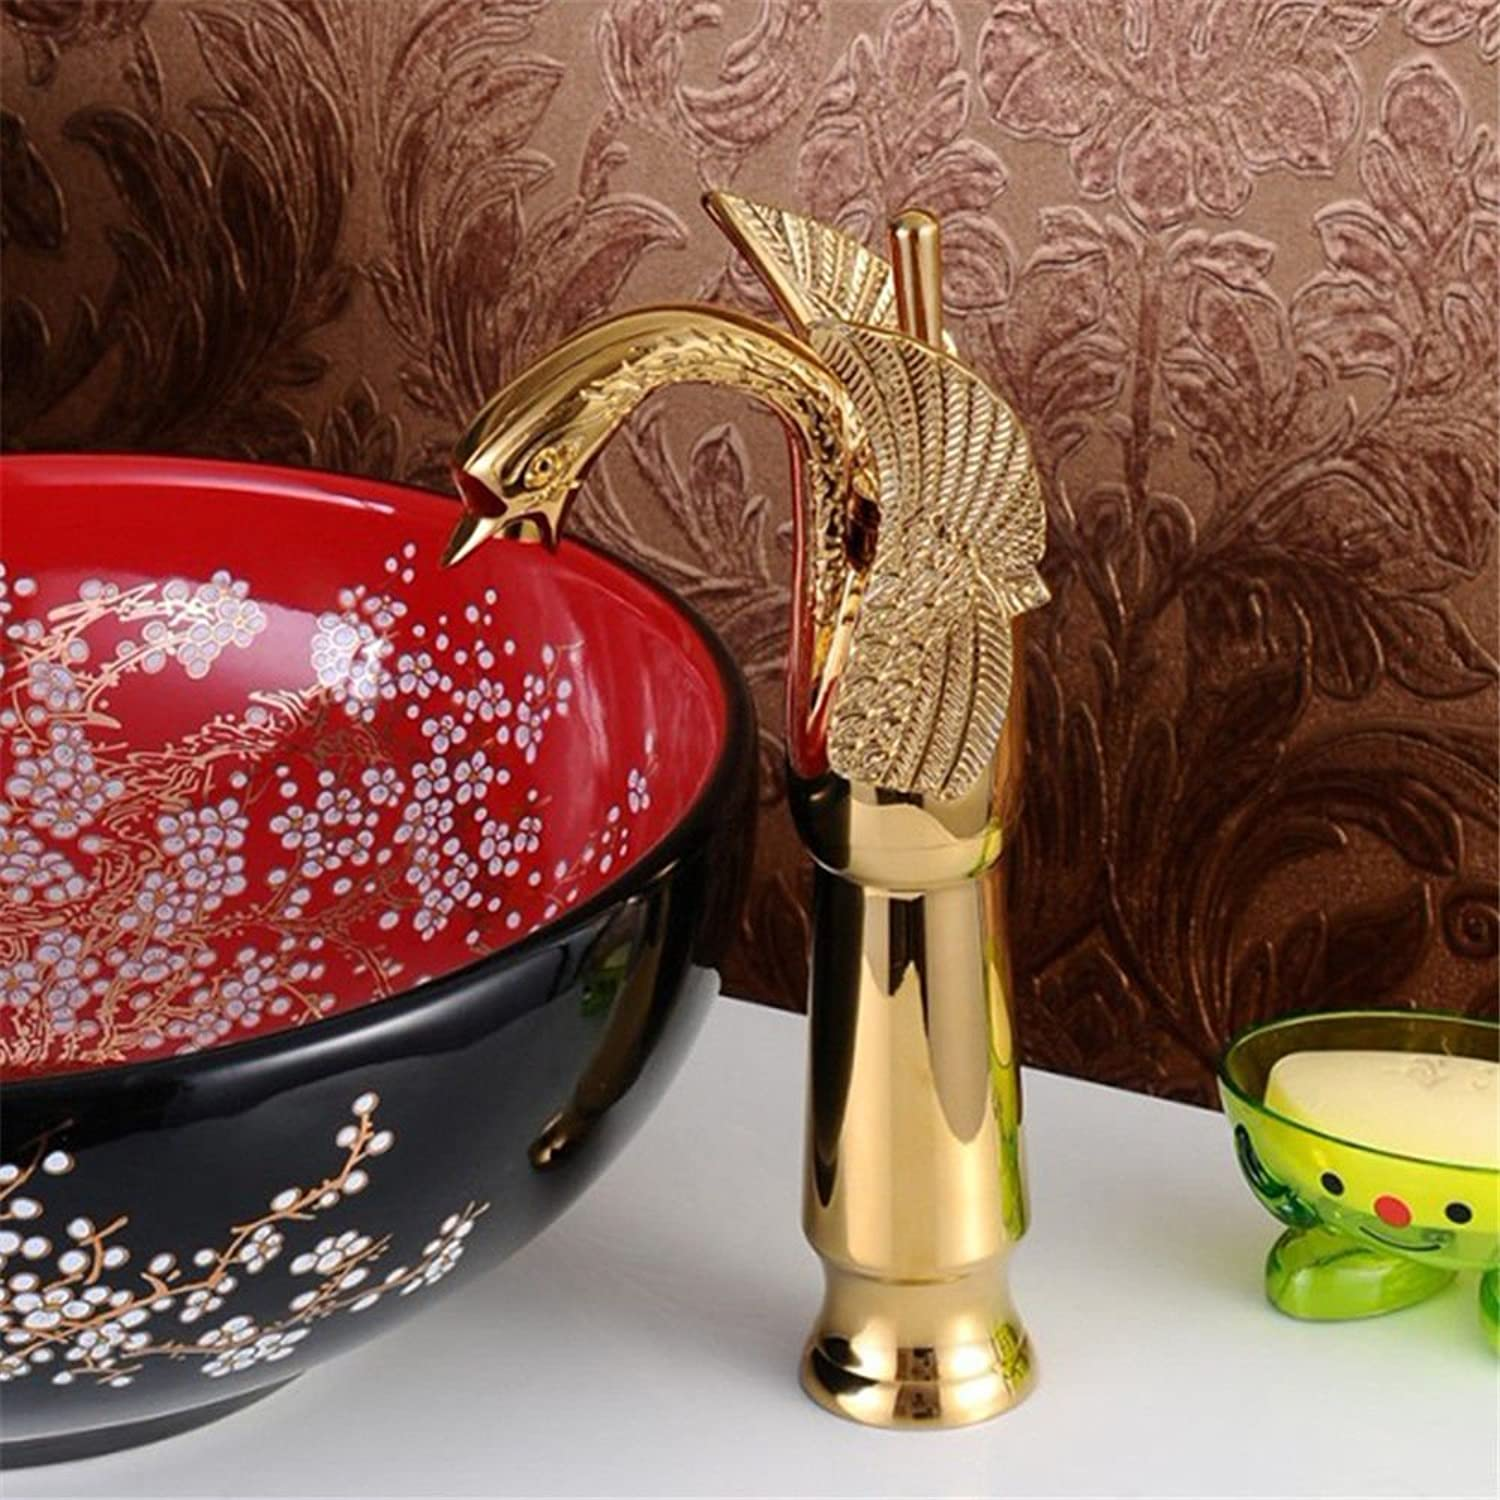 Restroom Fixtures SADASD Contemporary Bathroom Faucet Full Brass Faucet Ceramic Valve Single Hole Single Handle Cold Water With G1/2 Hose Janitorial & Sanitation Supplies